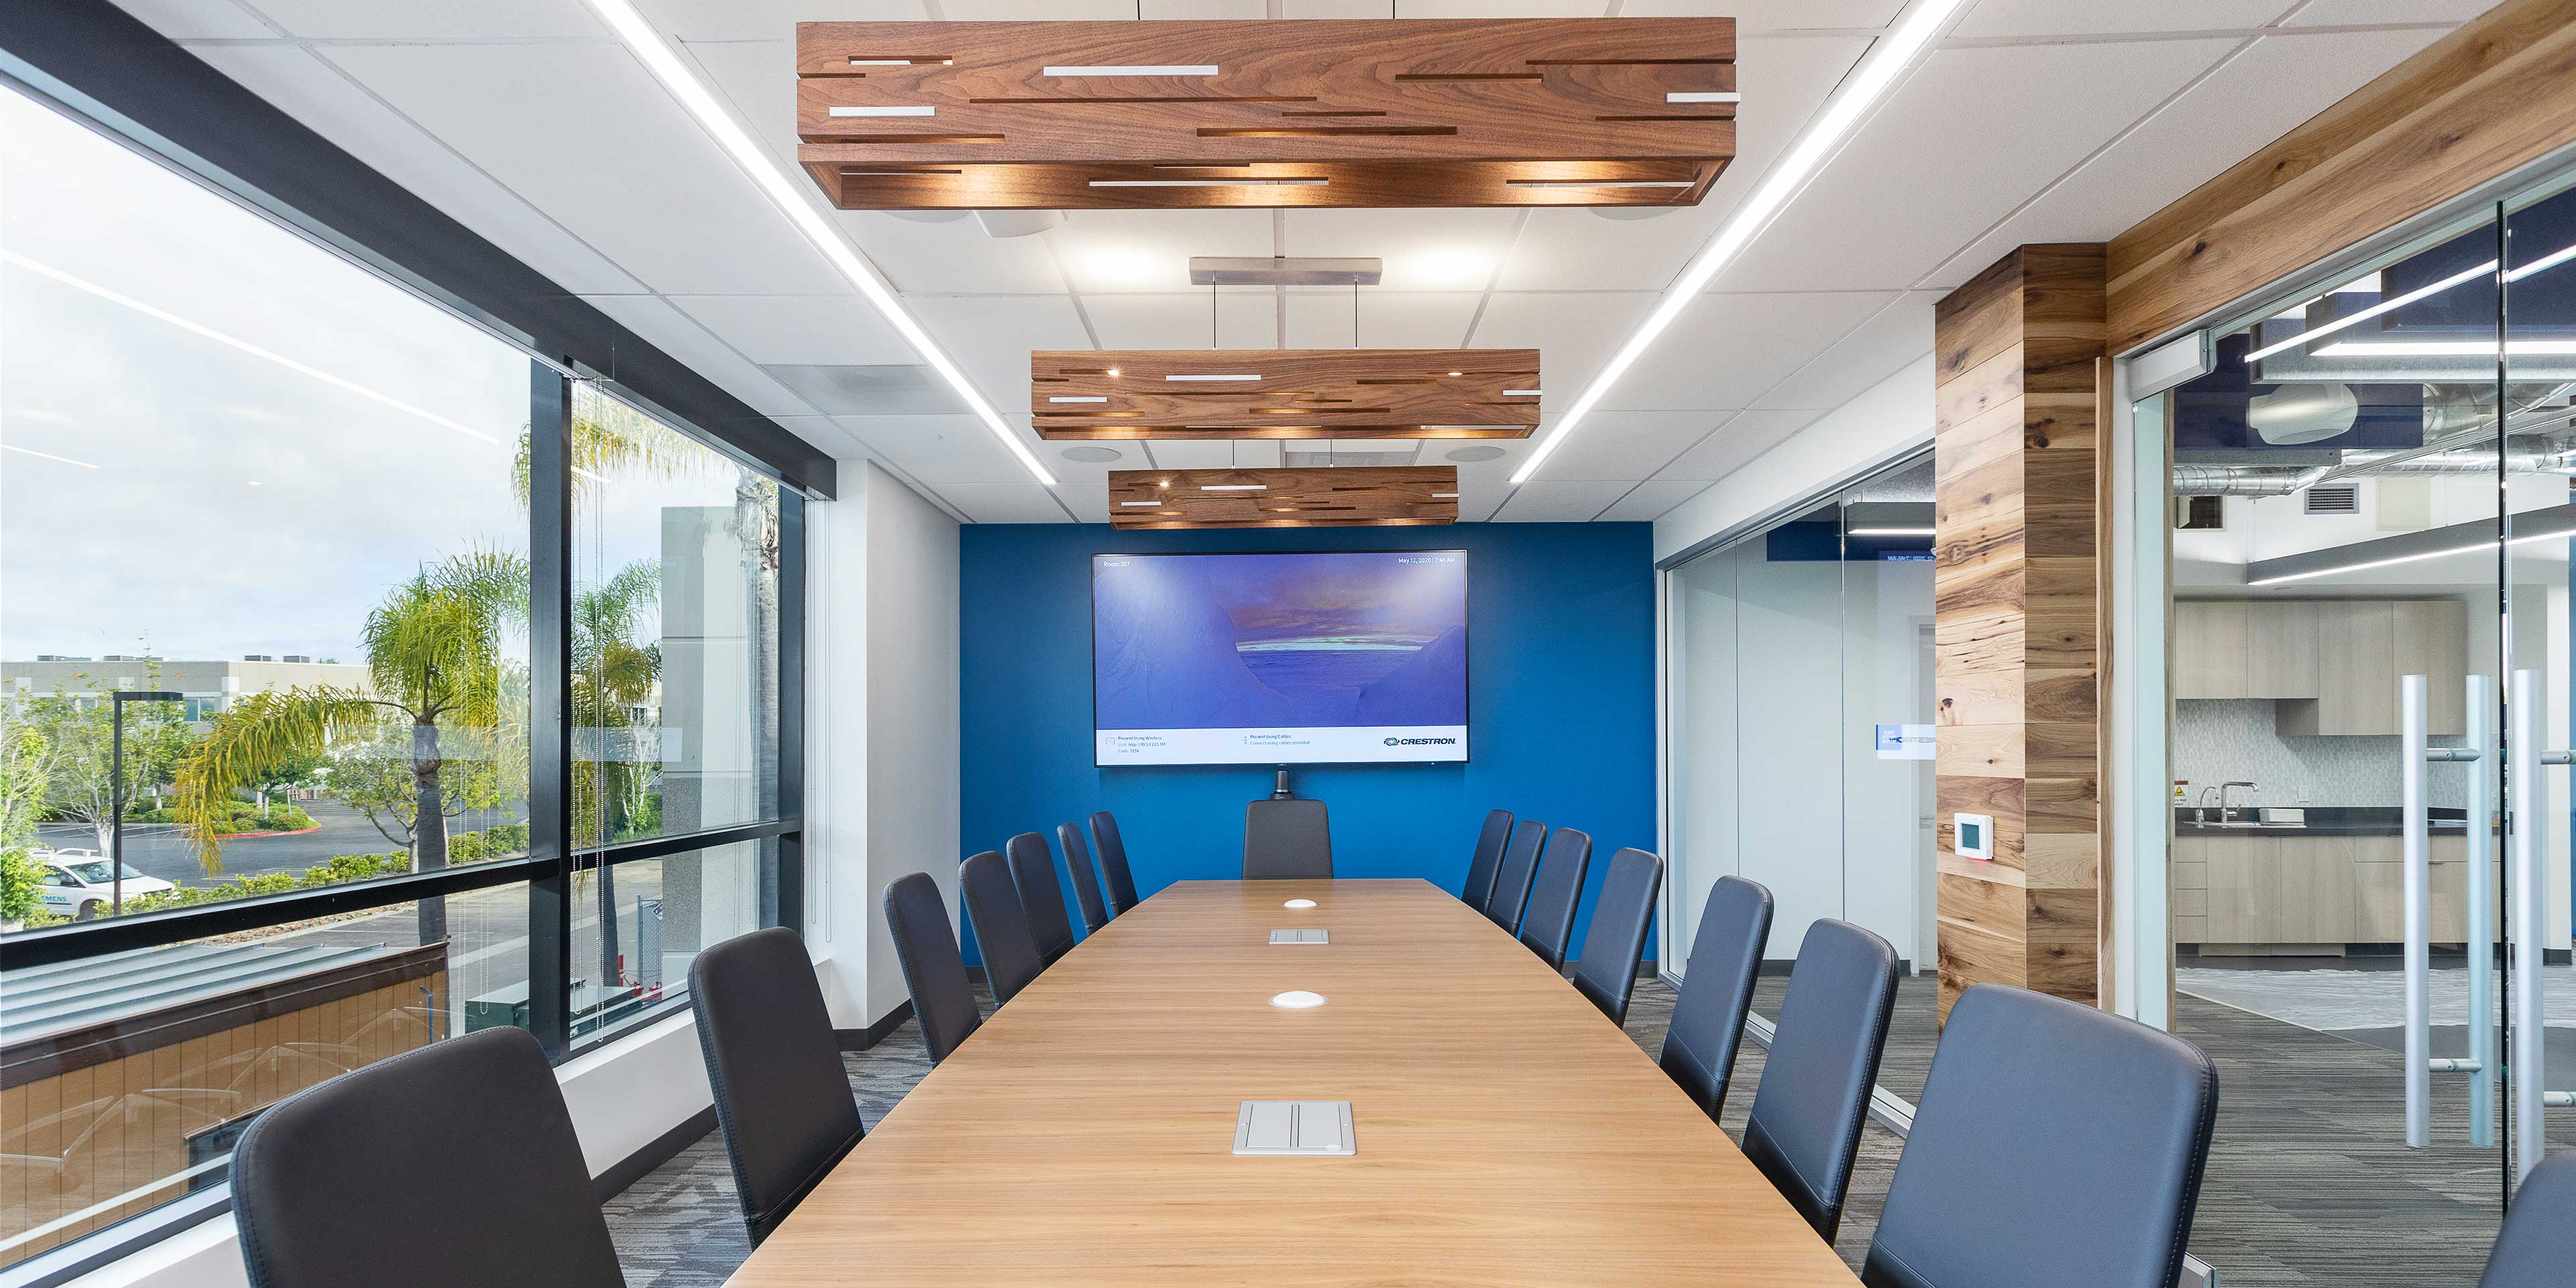 Boardroom in Abzena's new San Diego facility